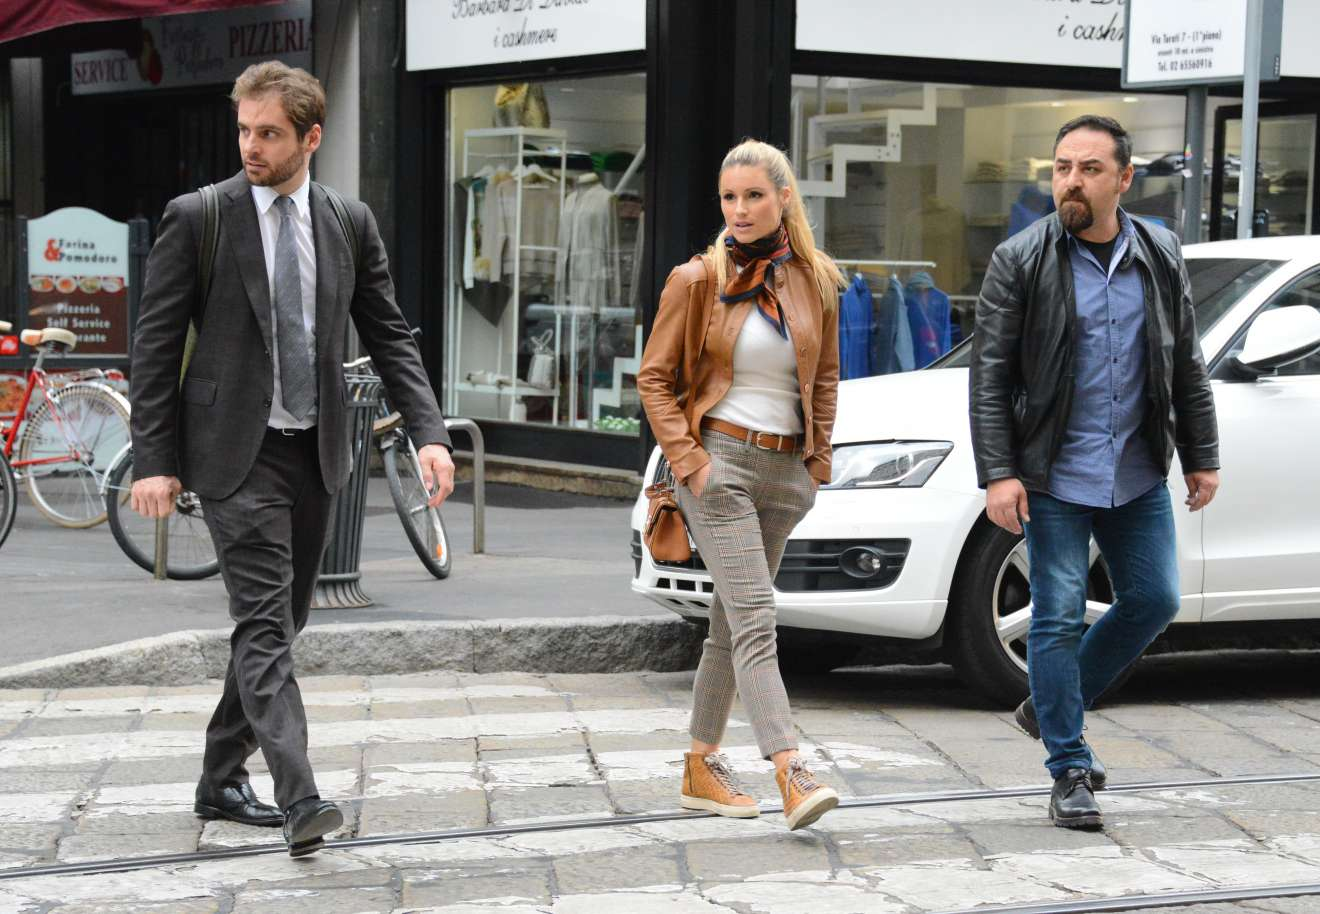 Michelle hunziker and tomaso trussardi at kartell store in milan - 2019 year